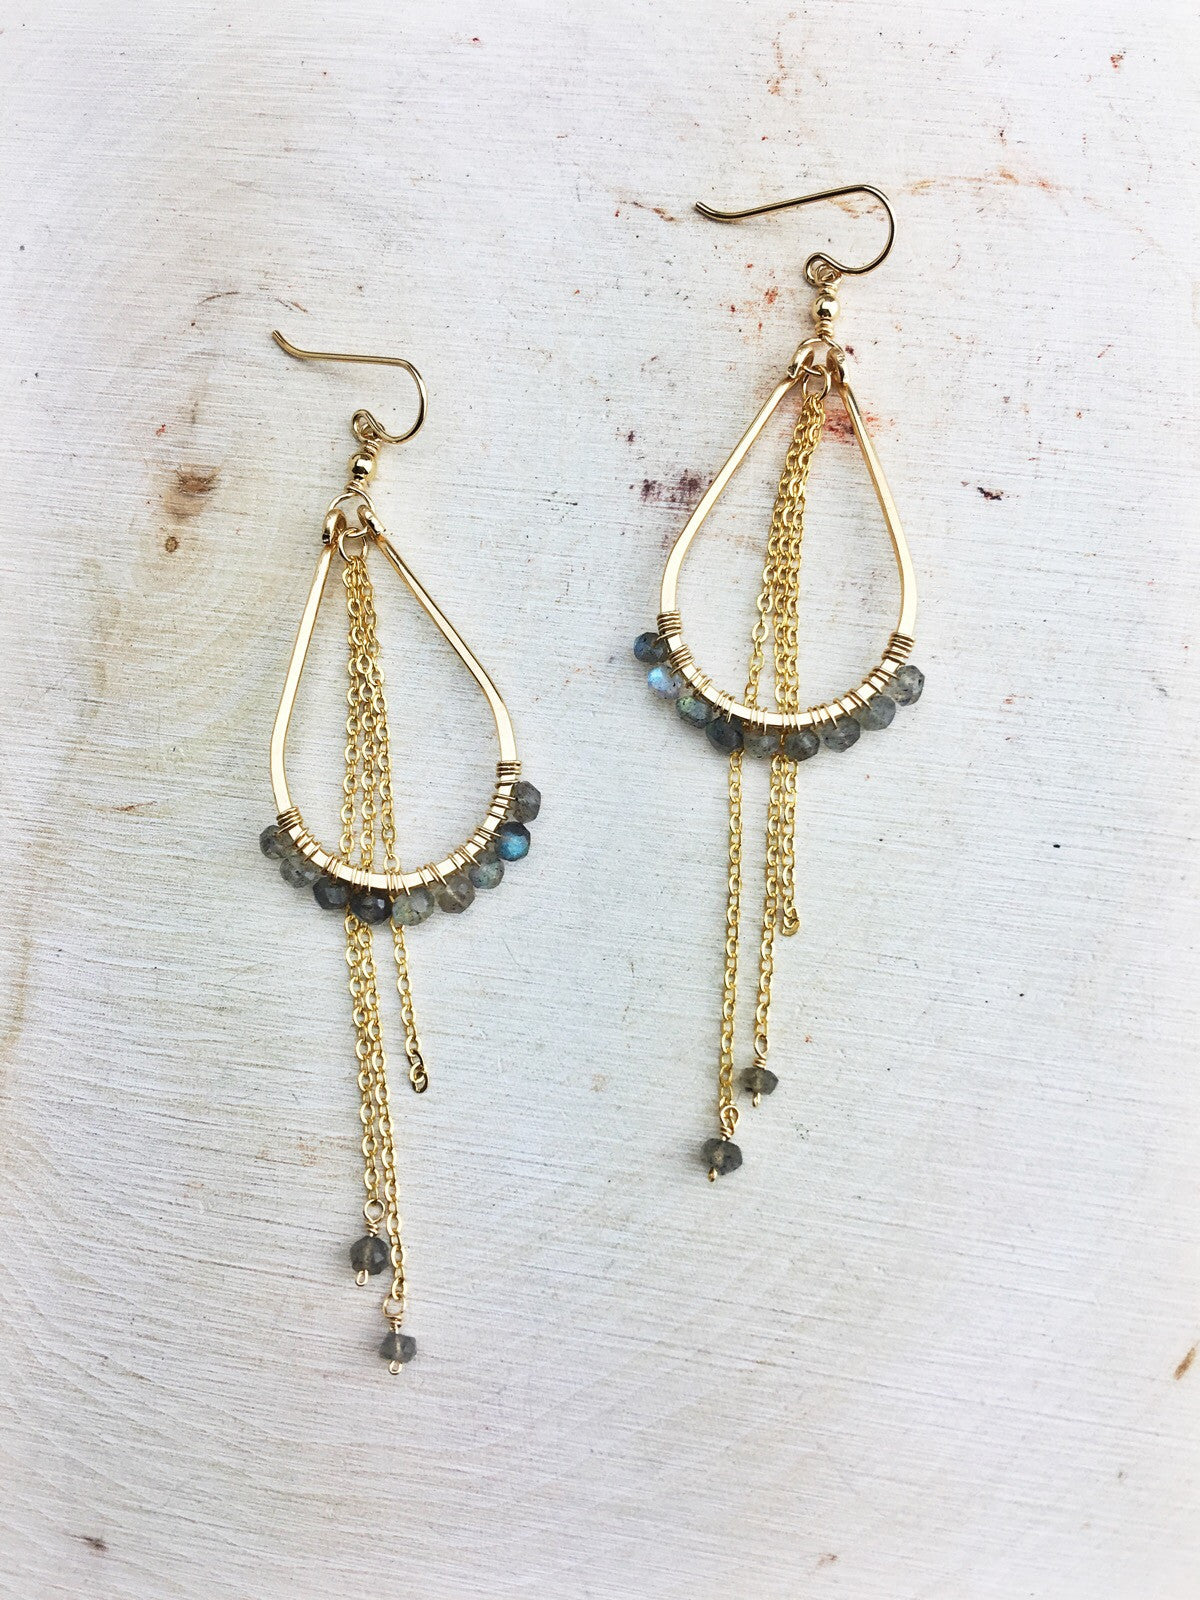 Northern Lights Earrings 'D' - Faceted Labradorite Gemstones 14k Gold Fill Frames